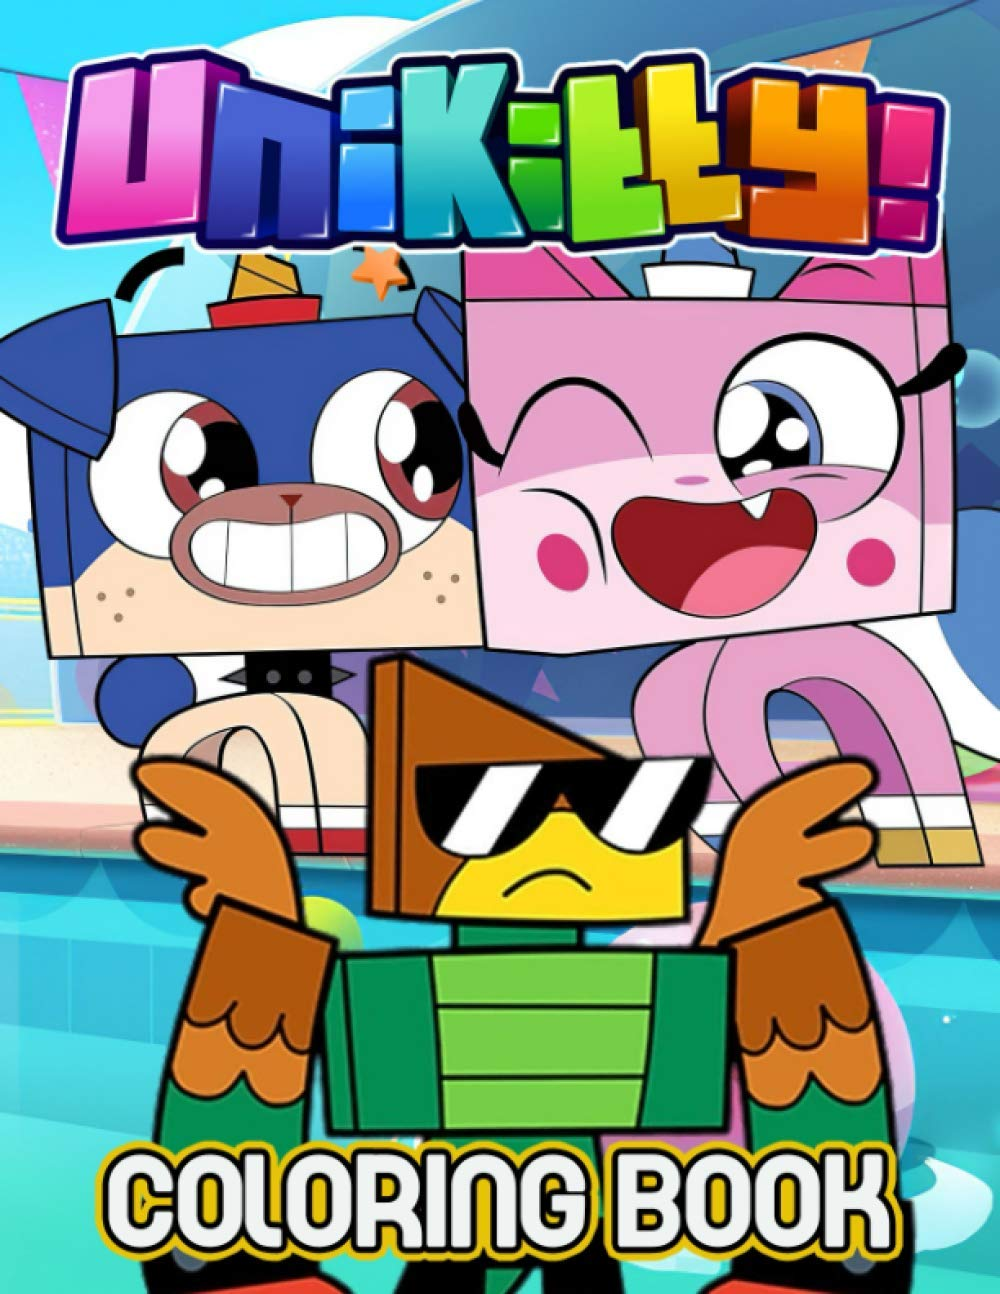 Unikitty Coloring Book Amazing Coloring Book For Those Who Love Unikitty With Incredible Designs To Color And Challenge Creativity Nelson Bruce 9798684297892 Amazon Com Books